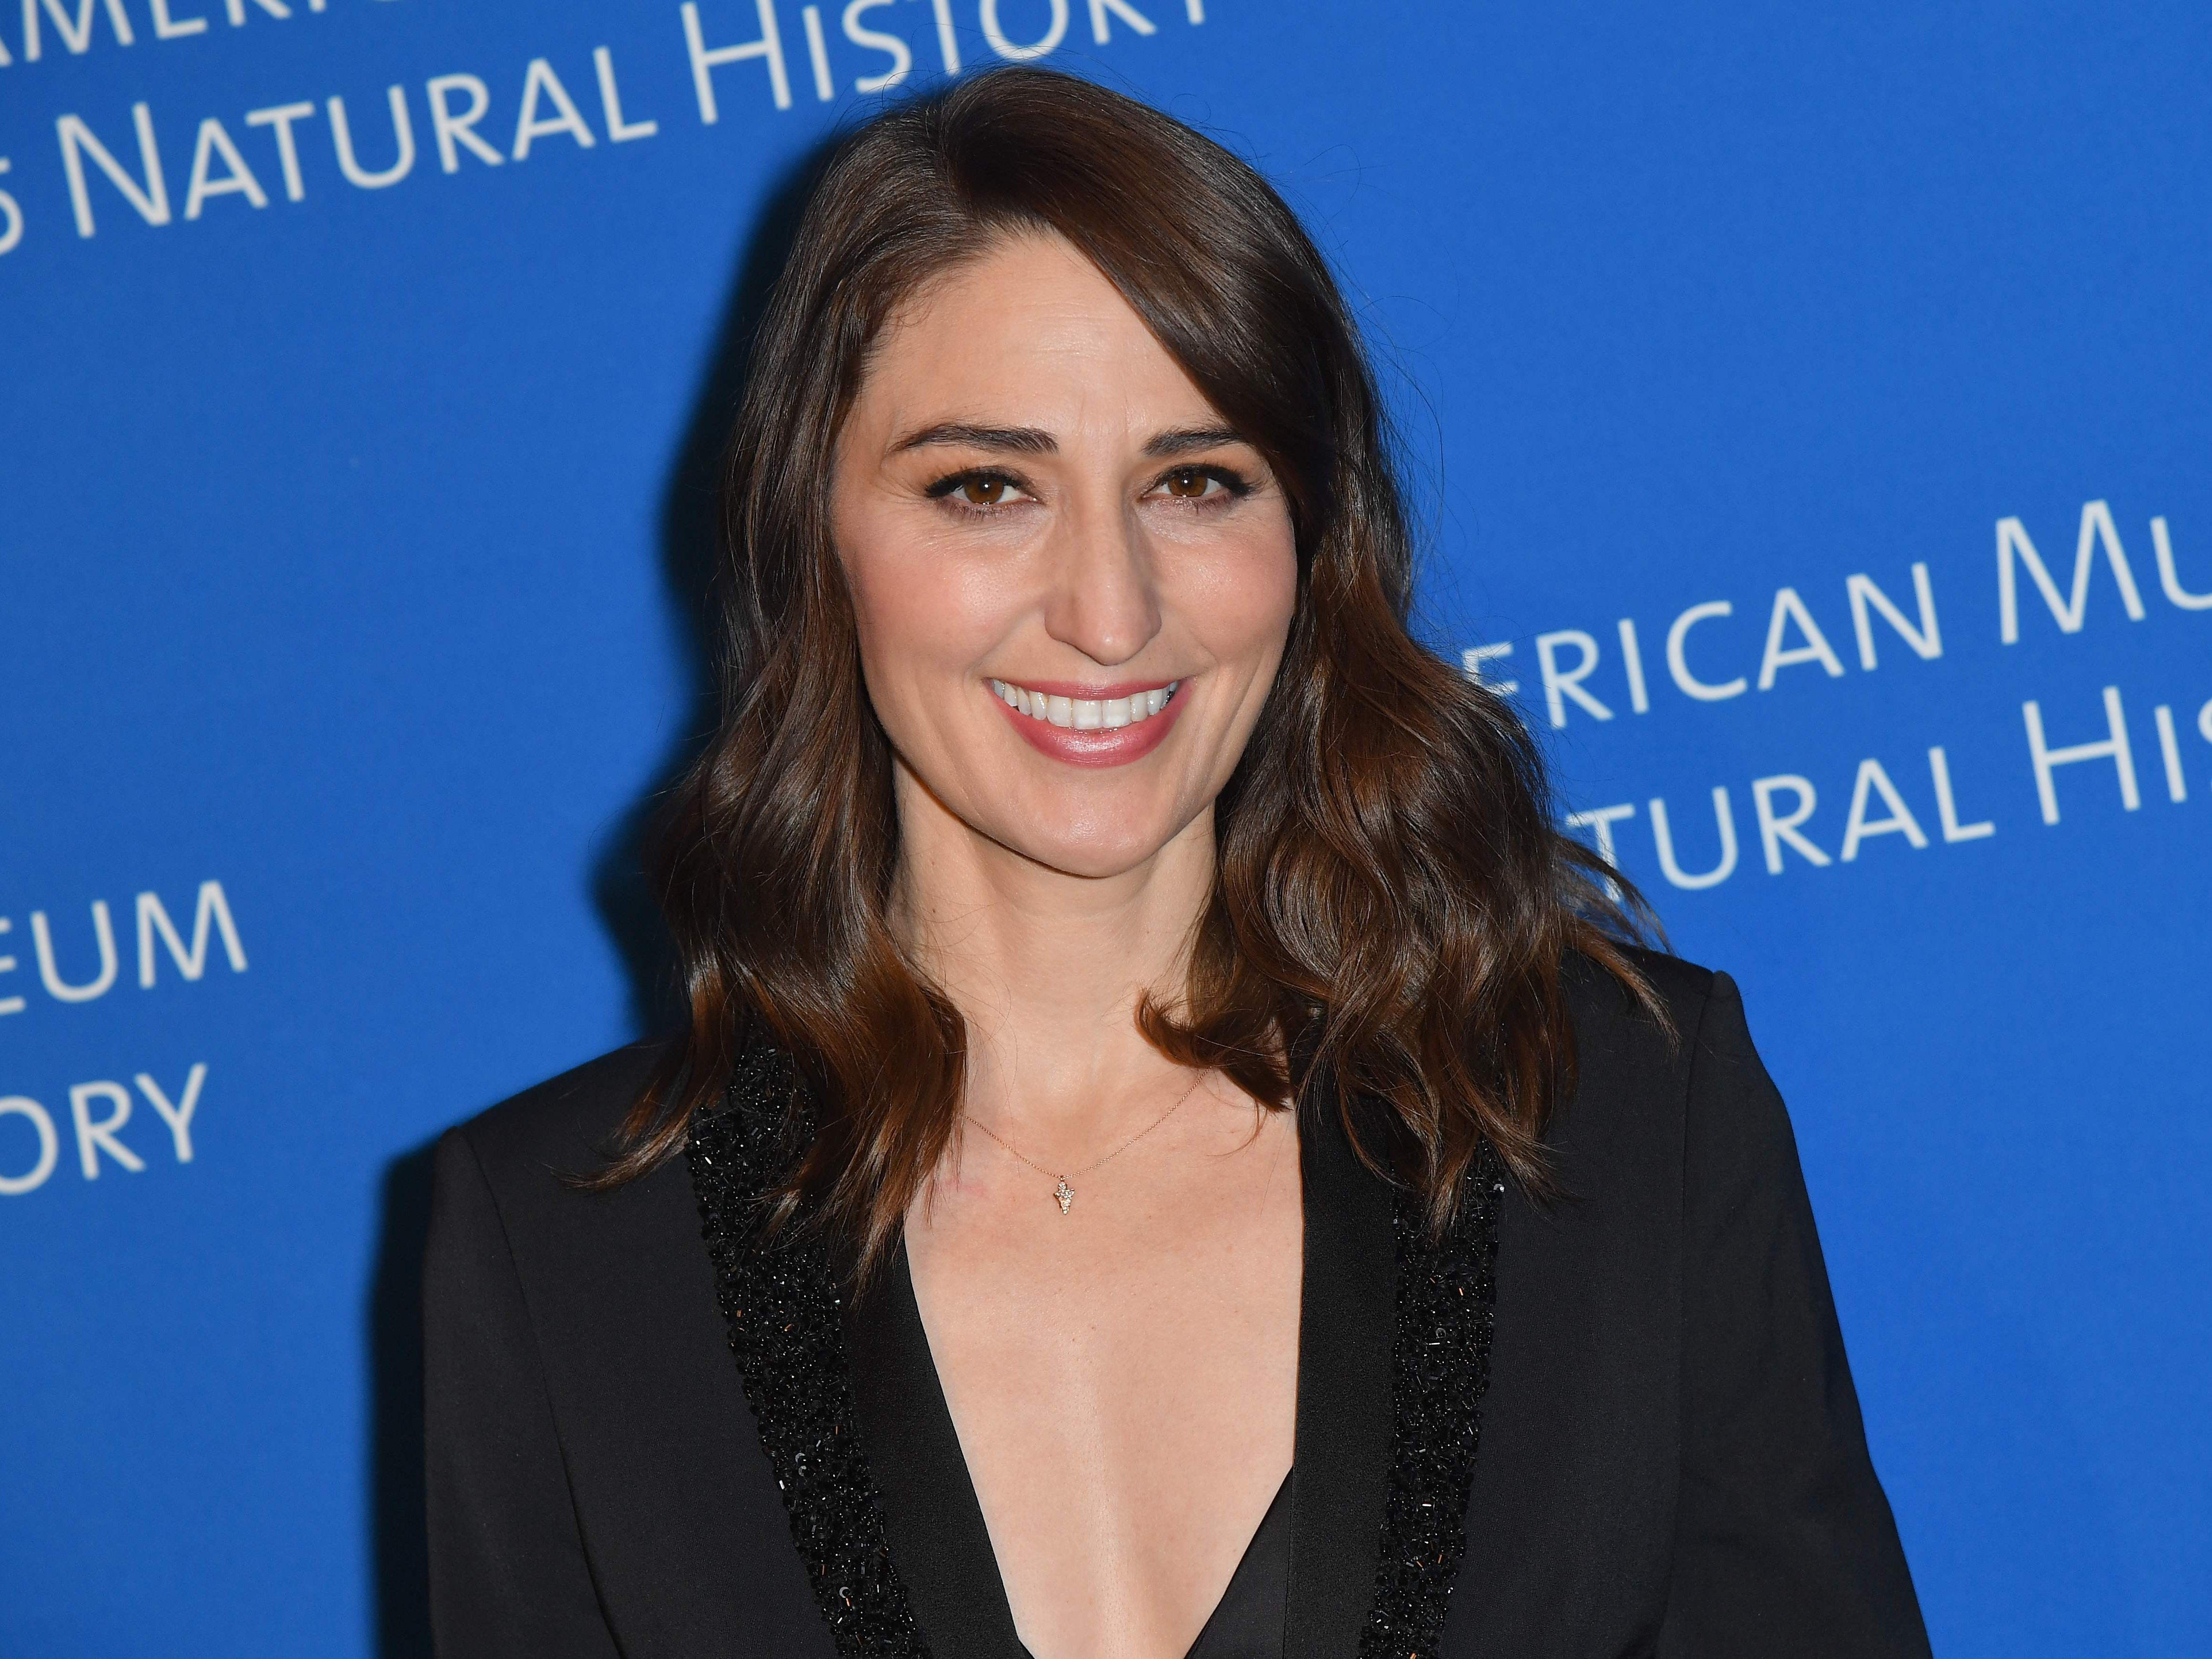 Singer/songwriter Sara Bareilles attends the American Museum of Natural History's 2018 Museum Gala on November 15, 2018 in New York City. (Photo by Angela Weiss / AFP)ANGELA WEISS/AFP/Getty Images ORG XMIT: American ORIG FILE ID: AFP_1AV9HM